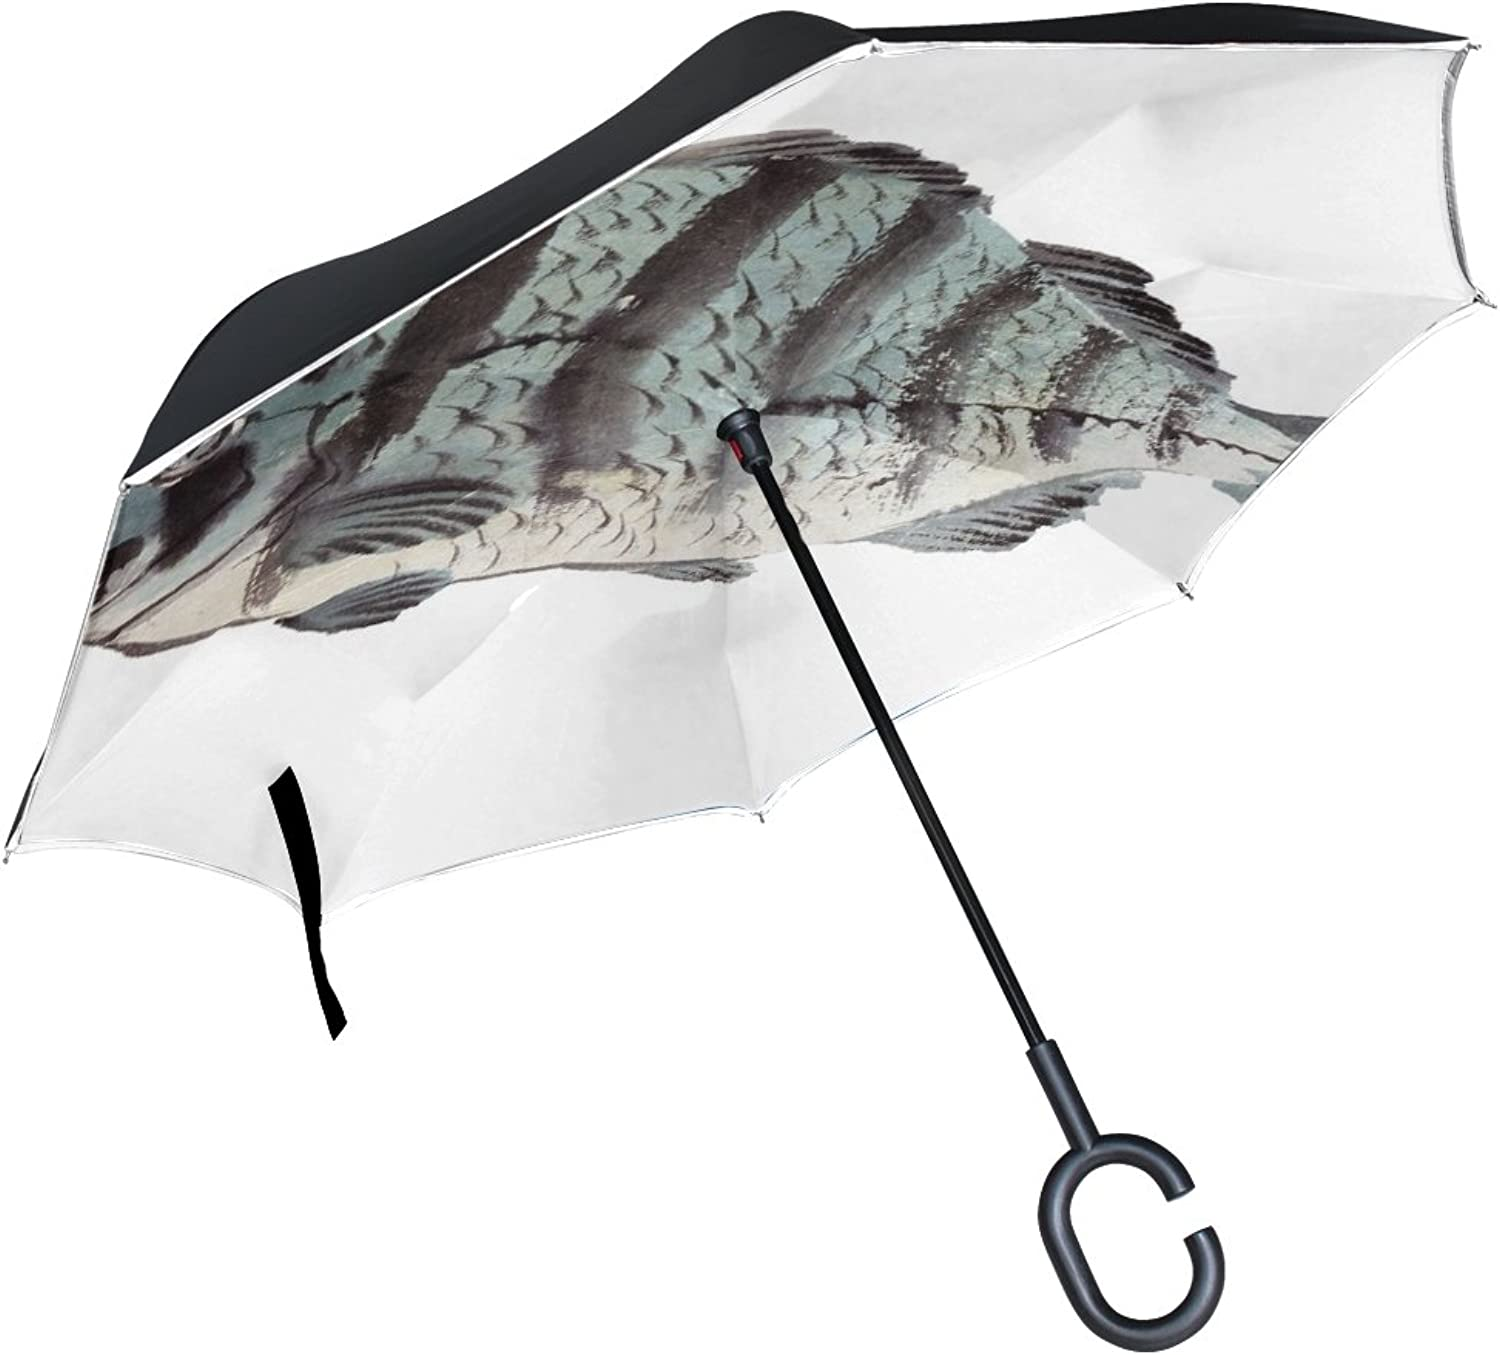 Double Layer Ingreened Fish Isolated White Art Vintage Umbrellas Reverse Folding Umbrella Windproof Uv Predection Big Straight Umbrella for Car Rain Outdoor with CShaped Handle